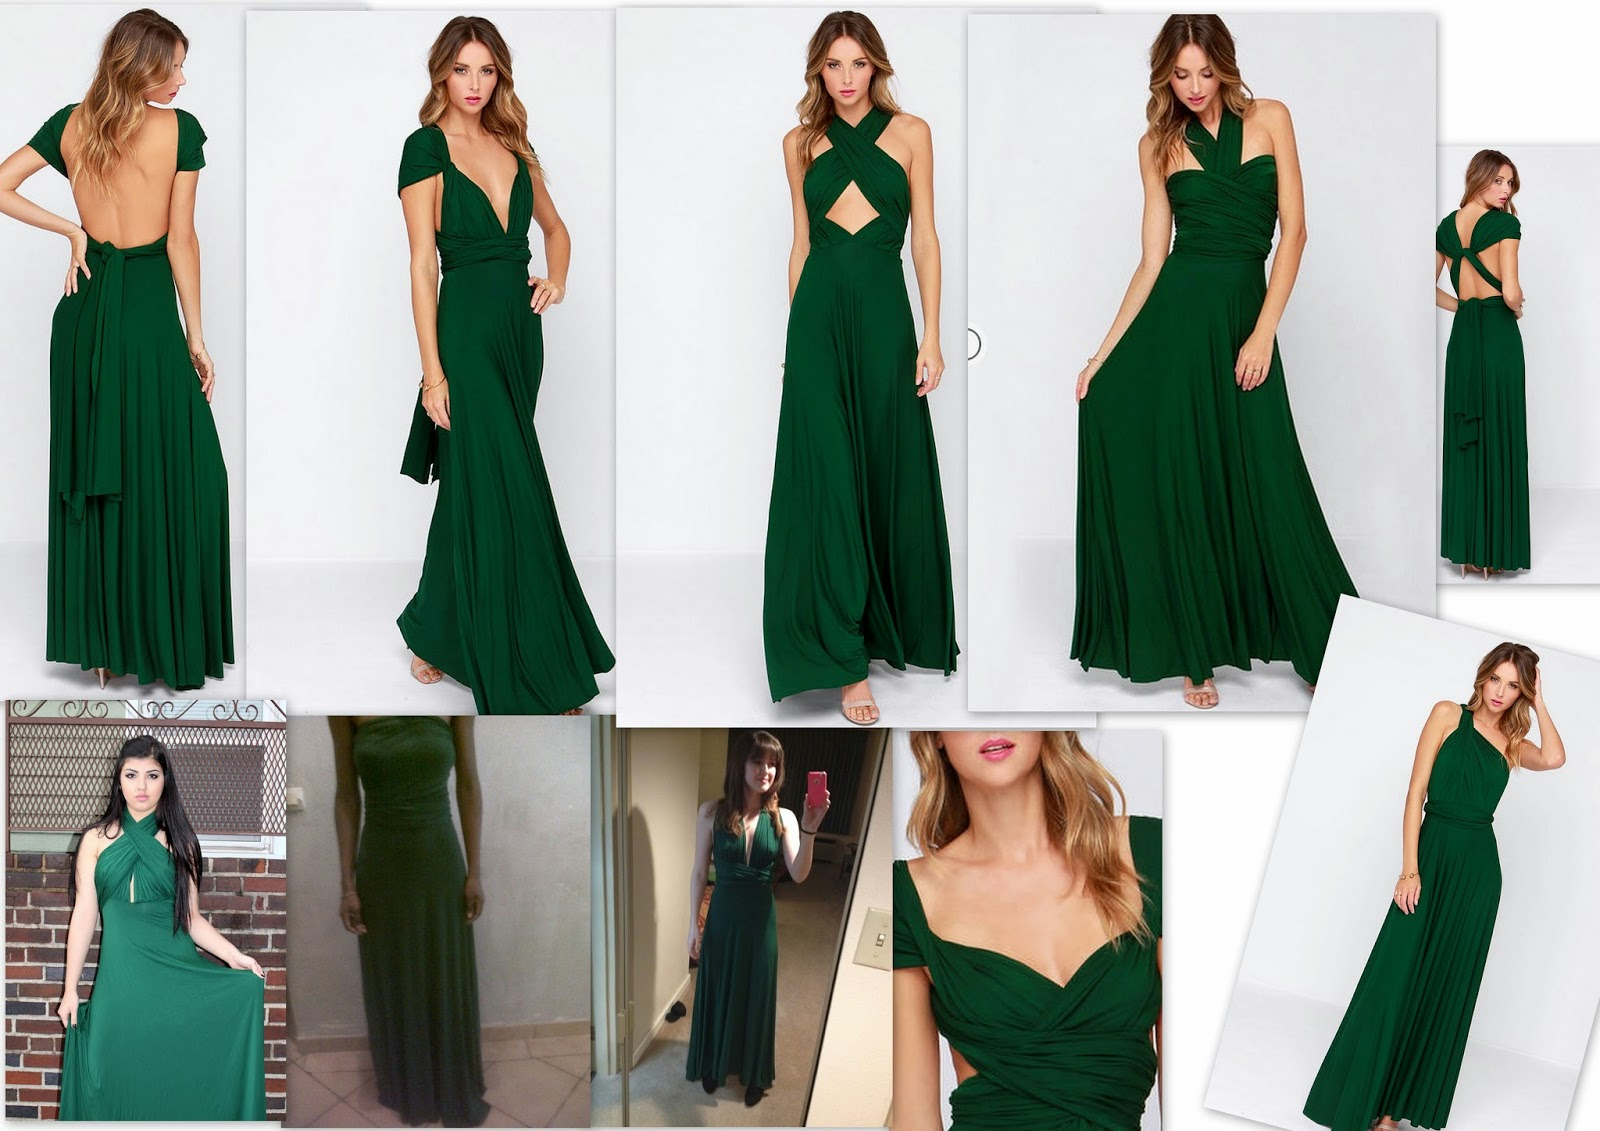 http://www.sheinside.com/Green-Backless-Maxi-Dress-p-194984-cat-1727.html?aff_id=461